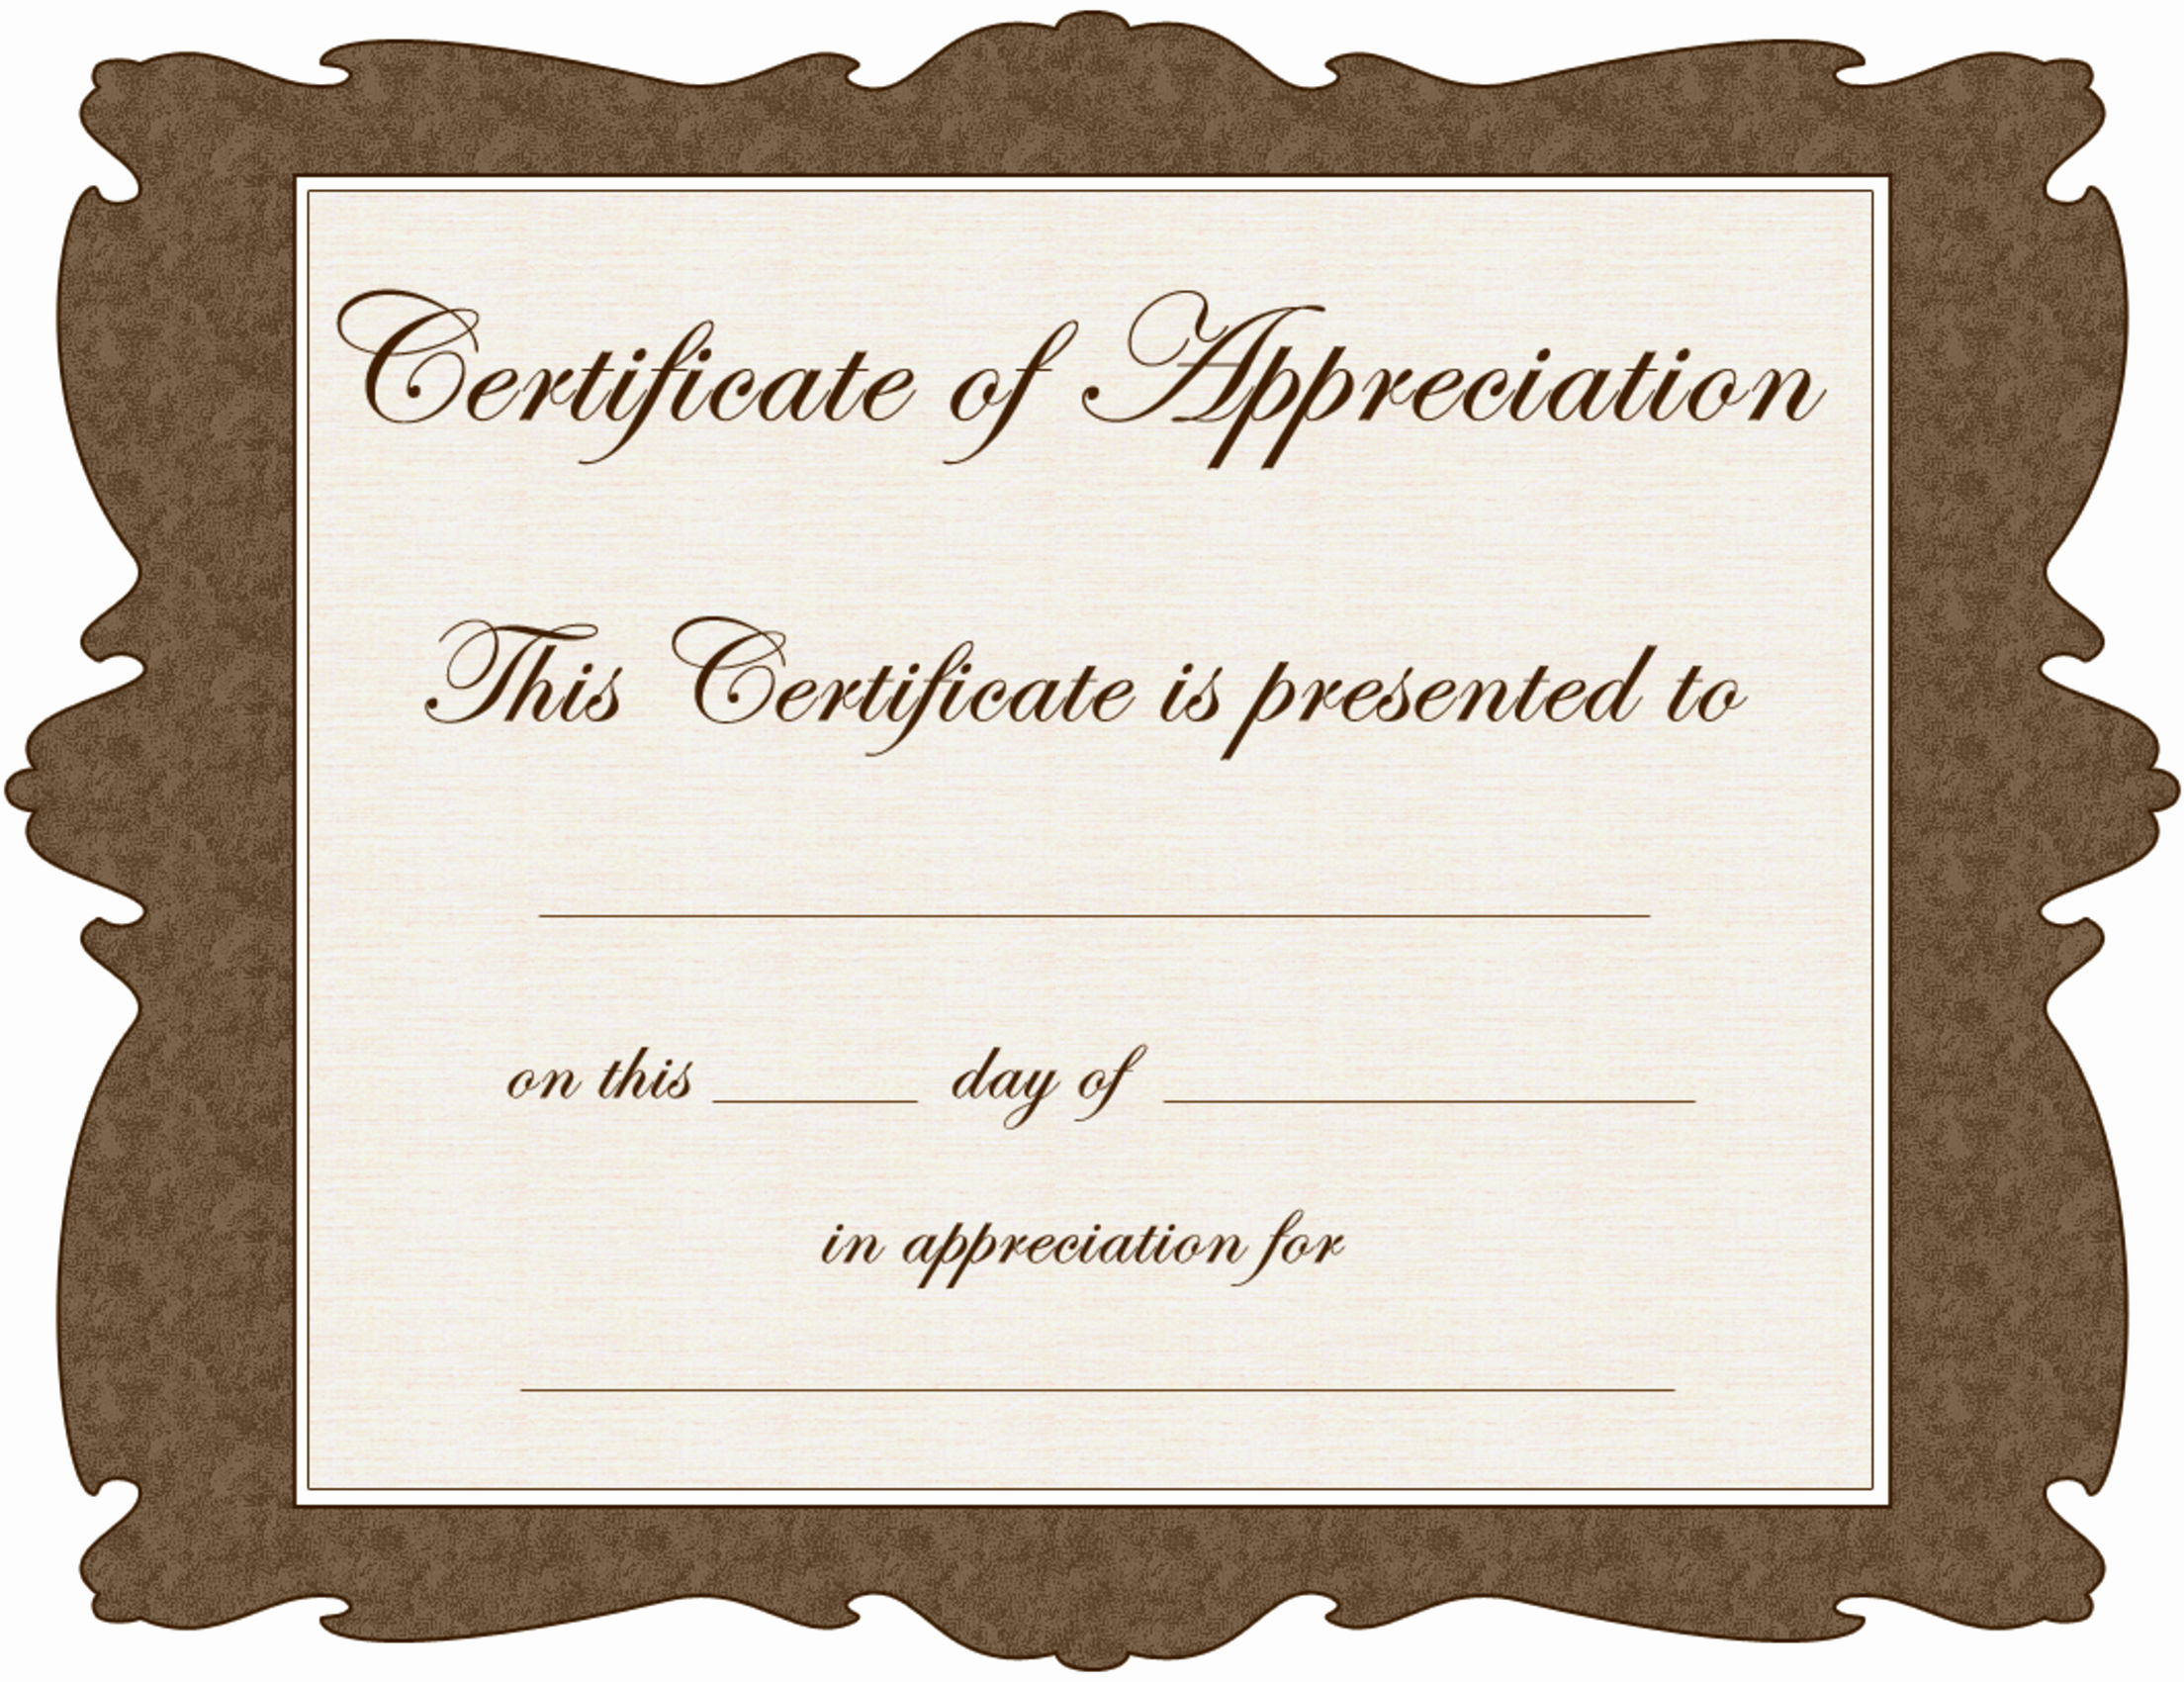 Appreciation Certificate Templates for Word New Free Word Certificate Appreciation Template Pdf by